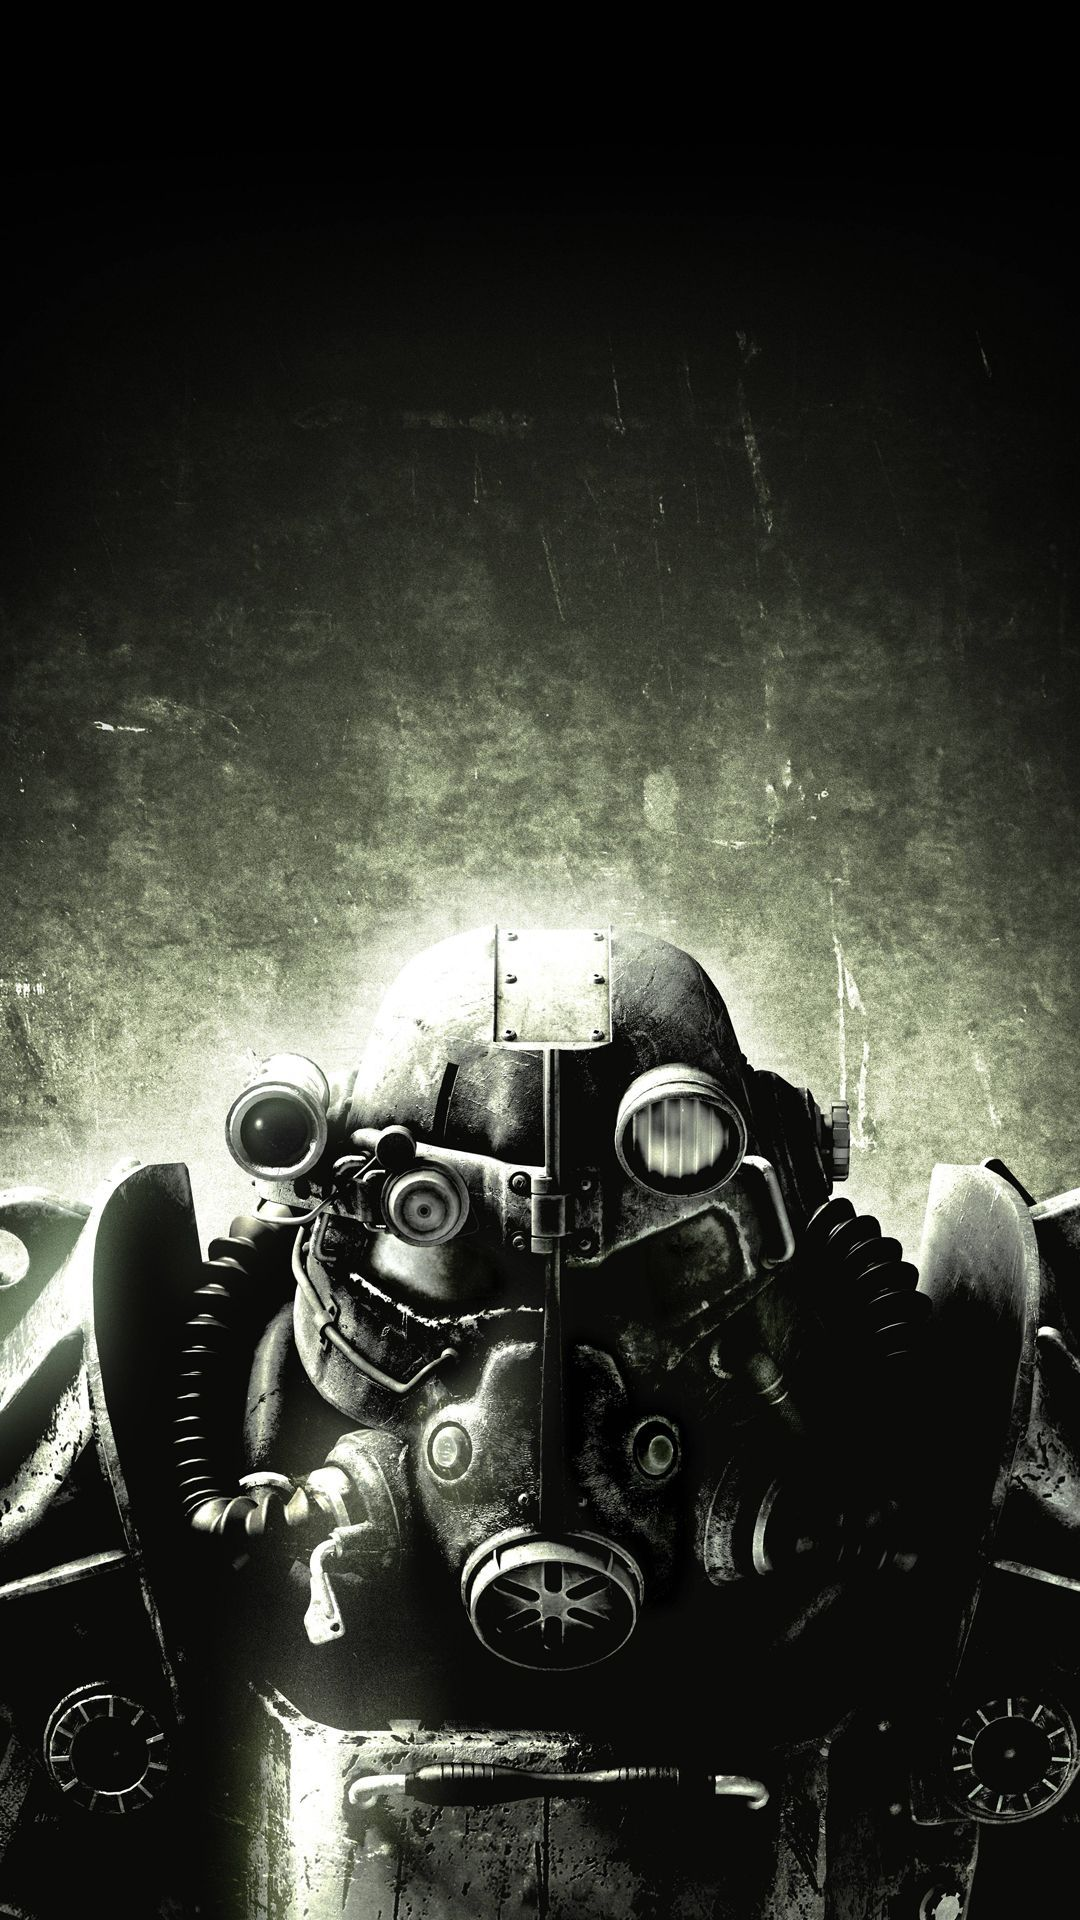 Fallout Hd Iphone Wallpaper Hupages Download Iphone Wallpapers Fallout Wallpaper Fallout 4 Wallpapers Background Images Hd